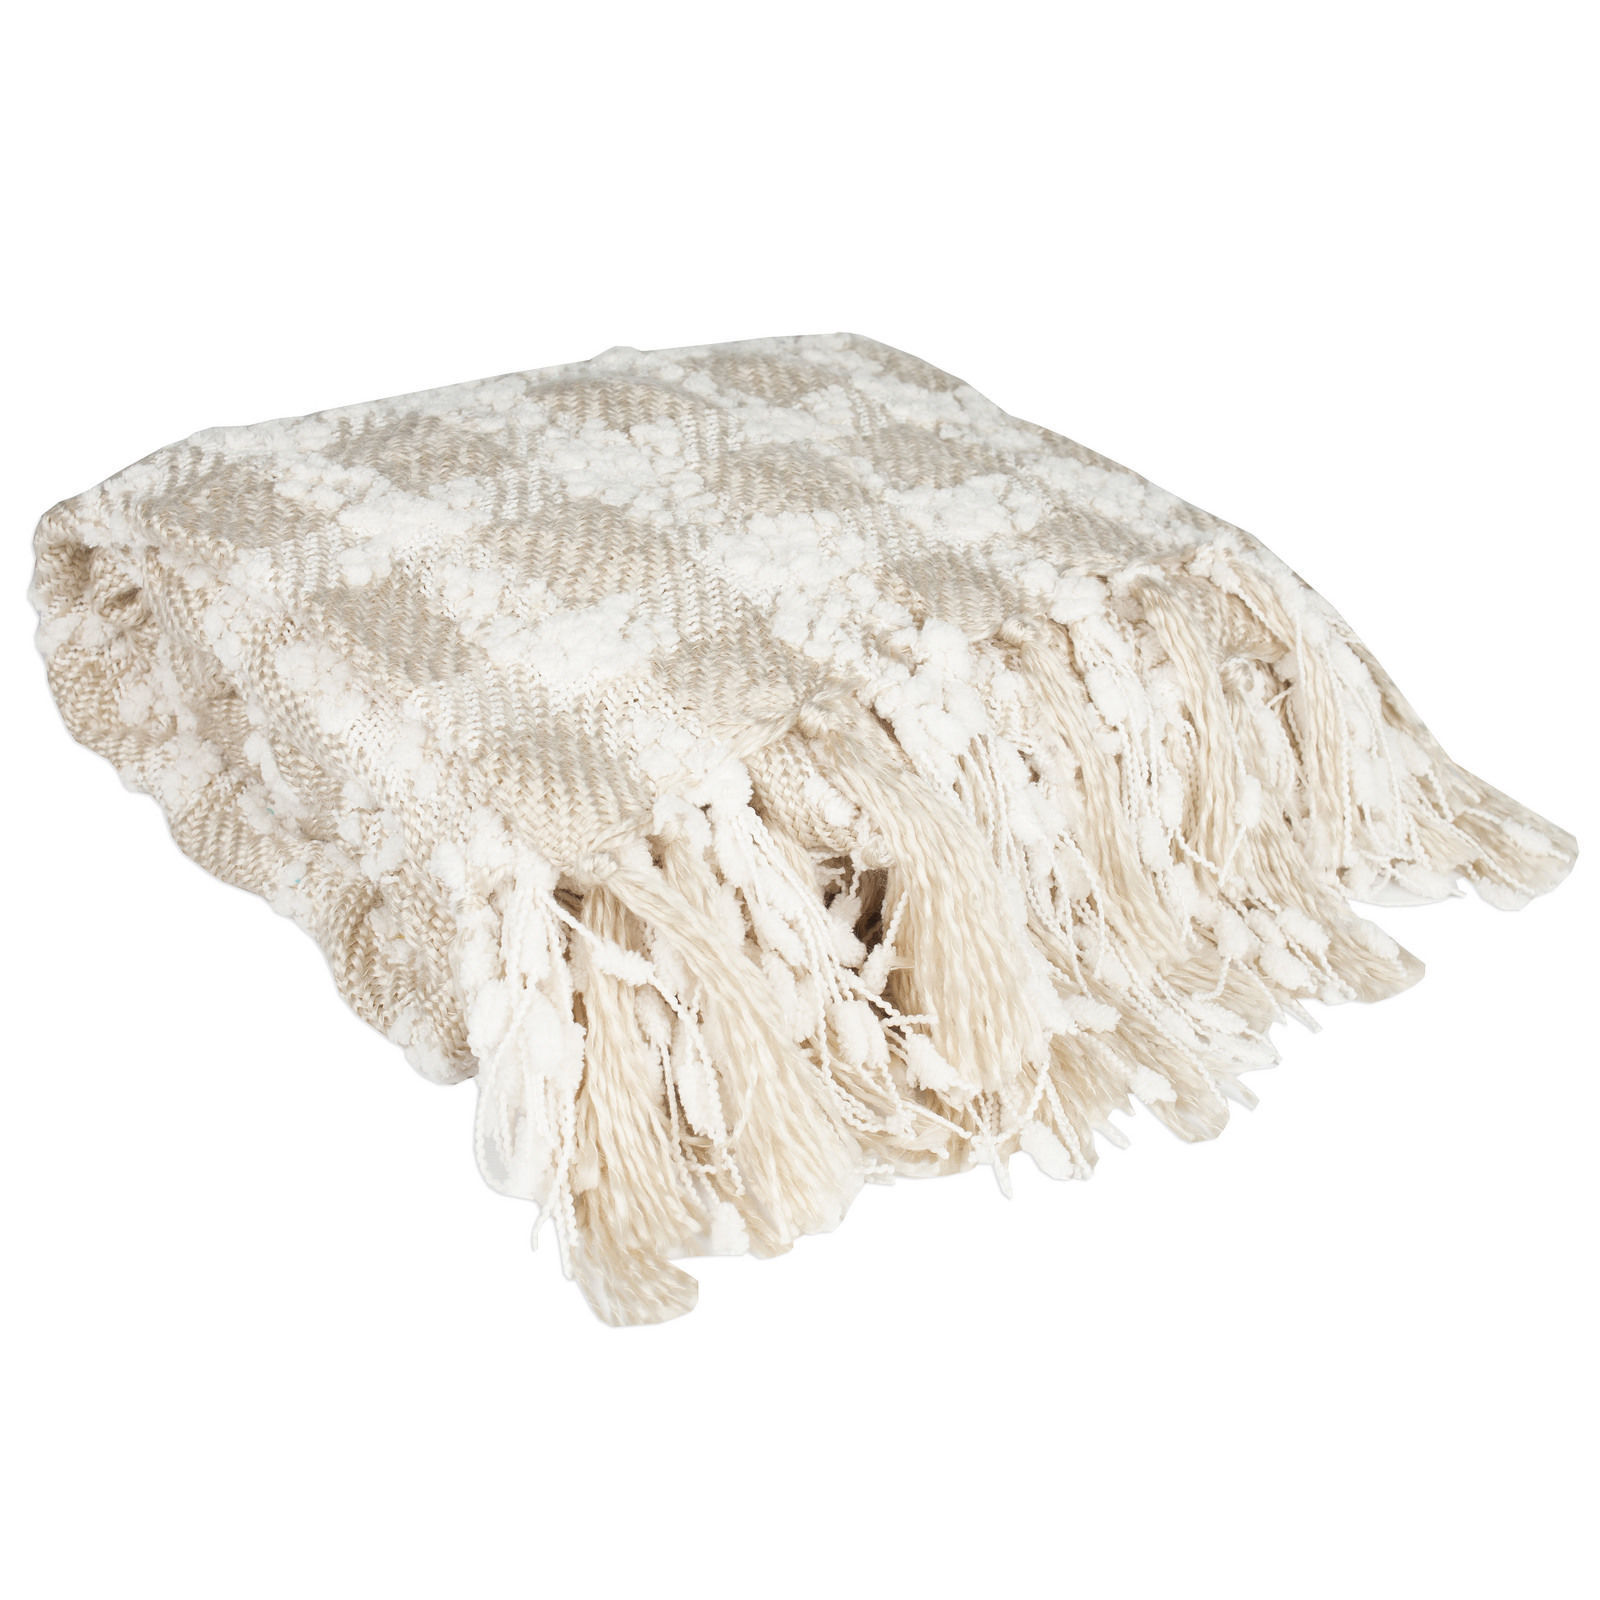 Ivory Checkered Wool Knit Throw Blanket